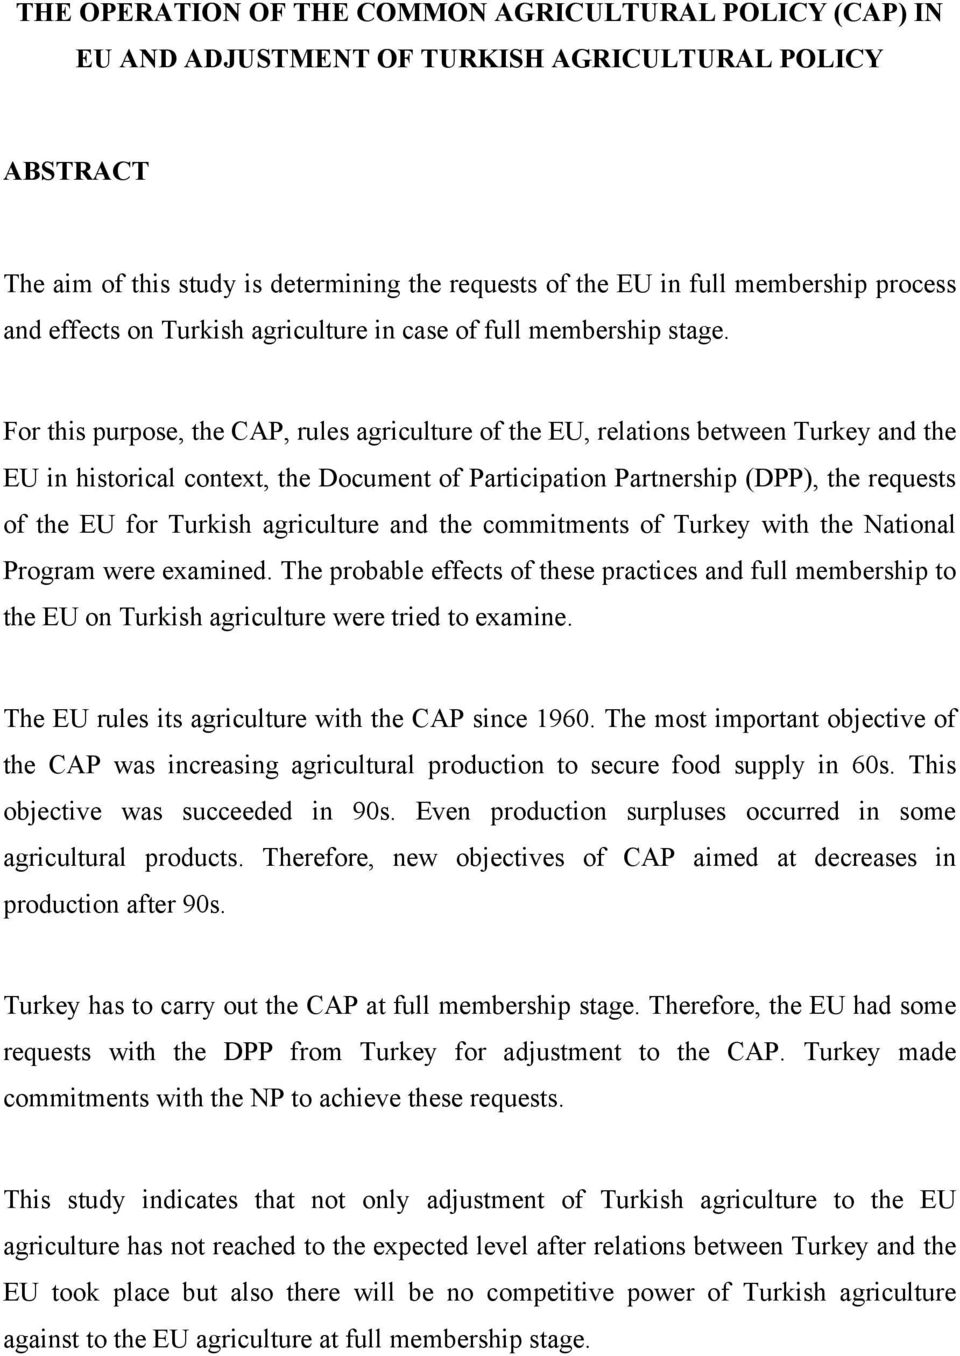 For this purpose, the CAP, rules agriculture of the EU, relations between Turkey and the EU in historical context, the Document of Participation Partnership (DPP), the requests of the EU for Turkish